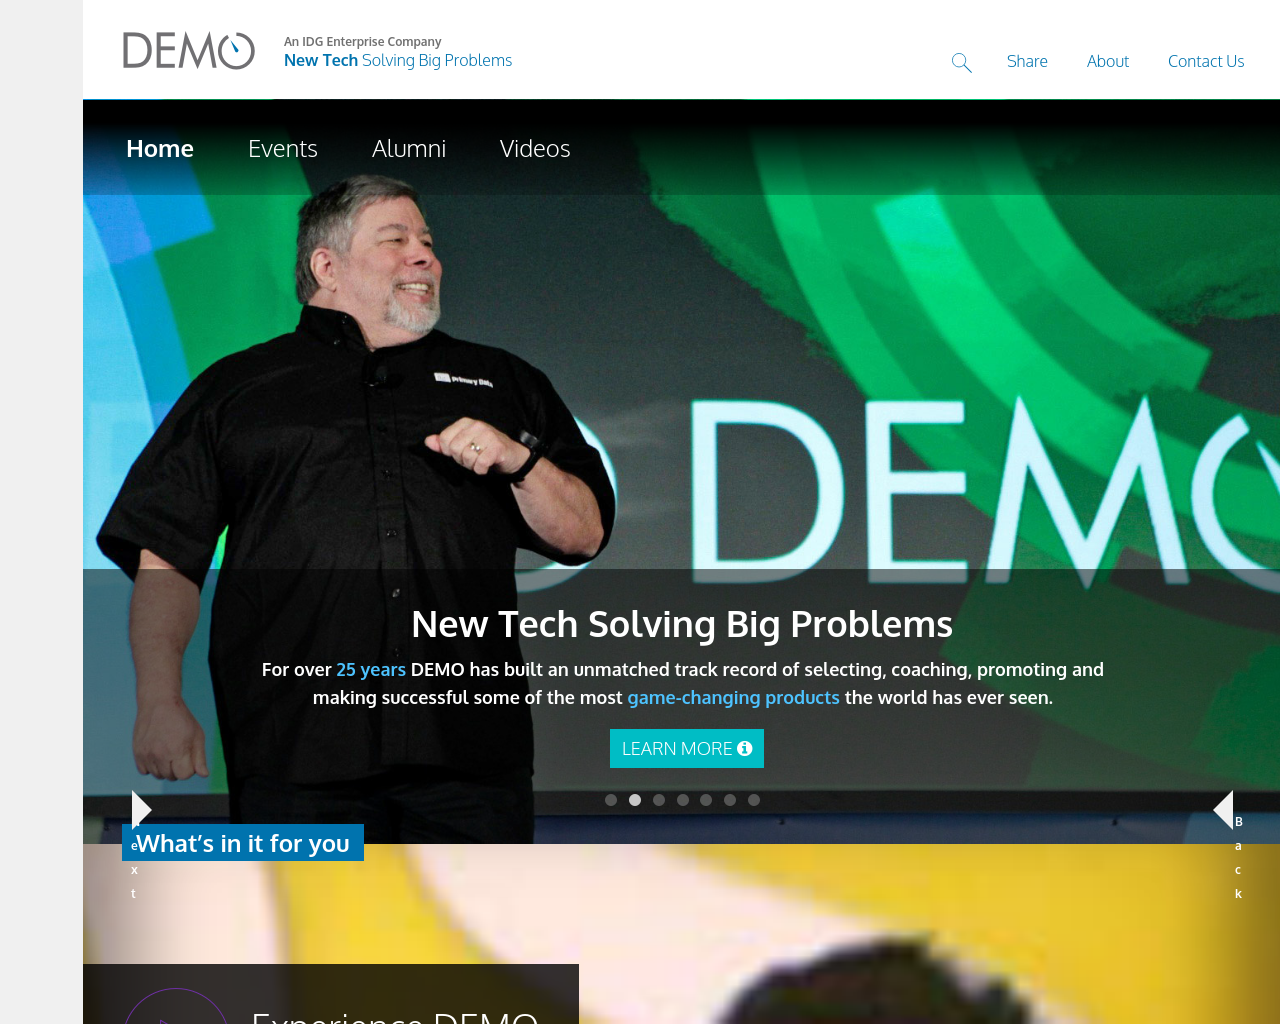 The-Demo-Blog-Advertising-Reviews-Pricing